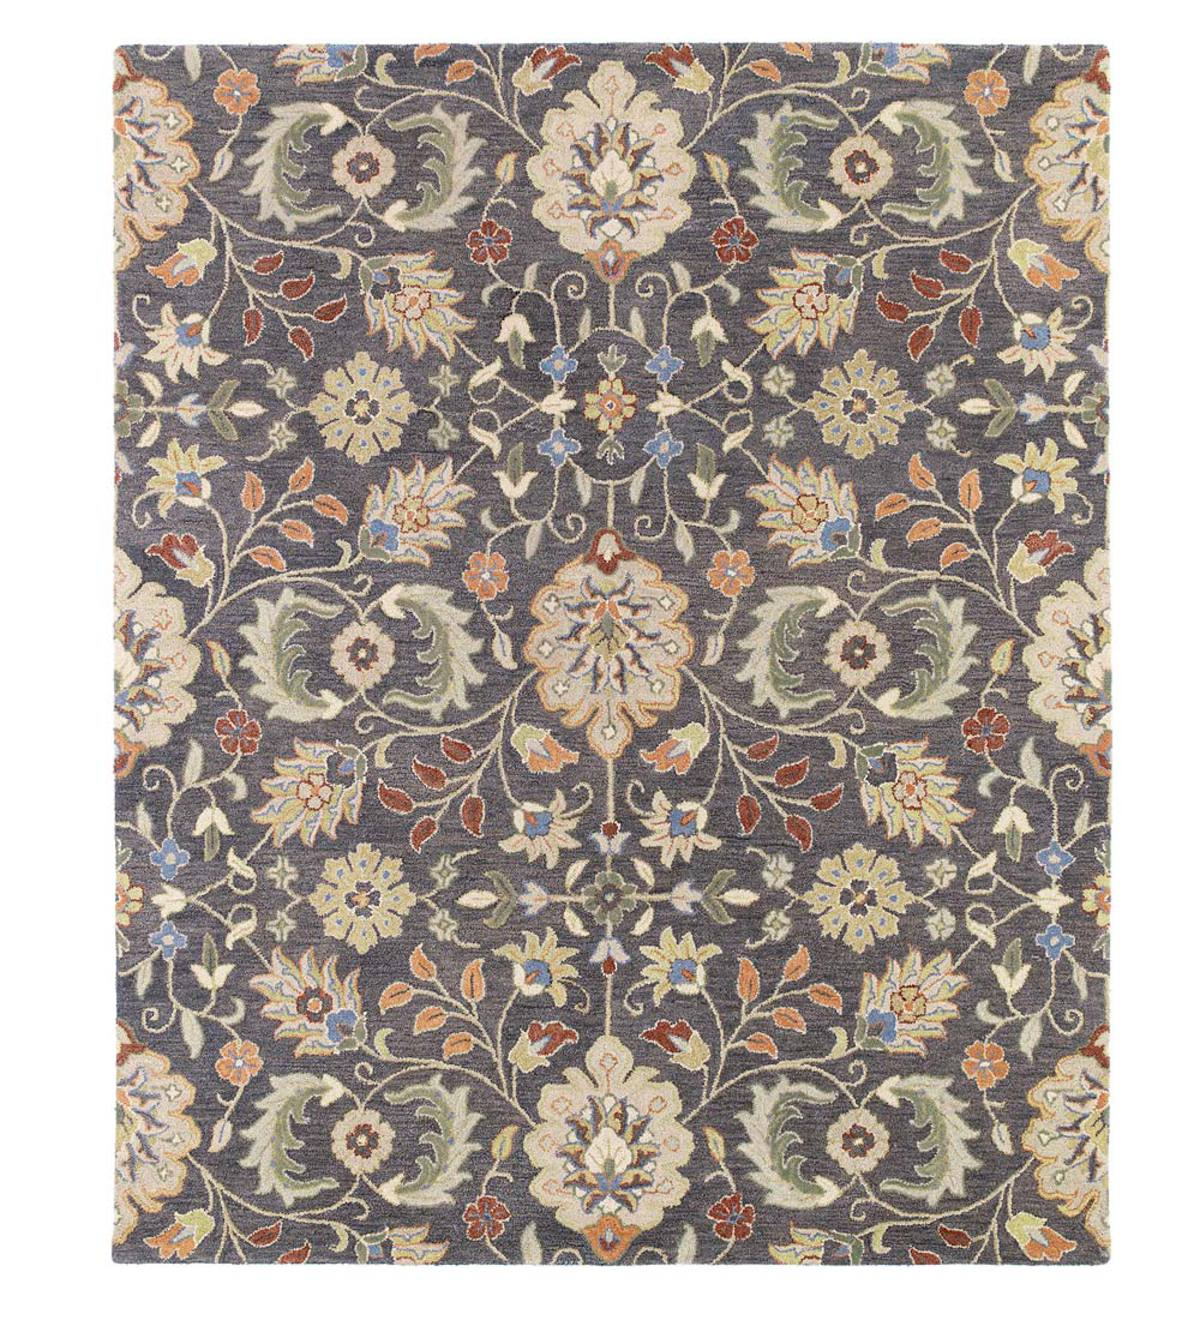 Meadow Wildflower Wool Rug, 10' x 14' - Pewter